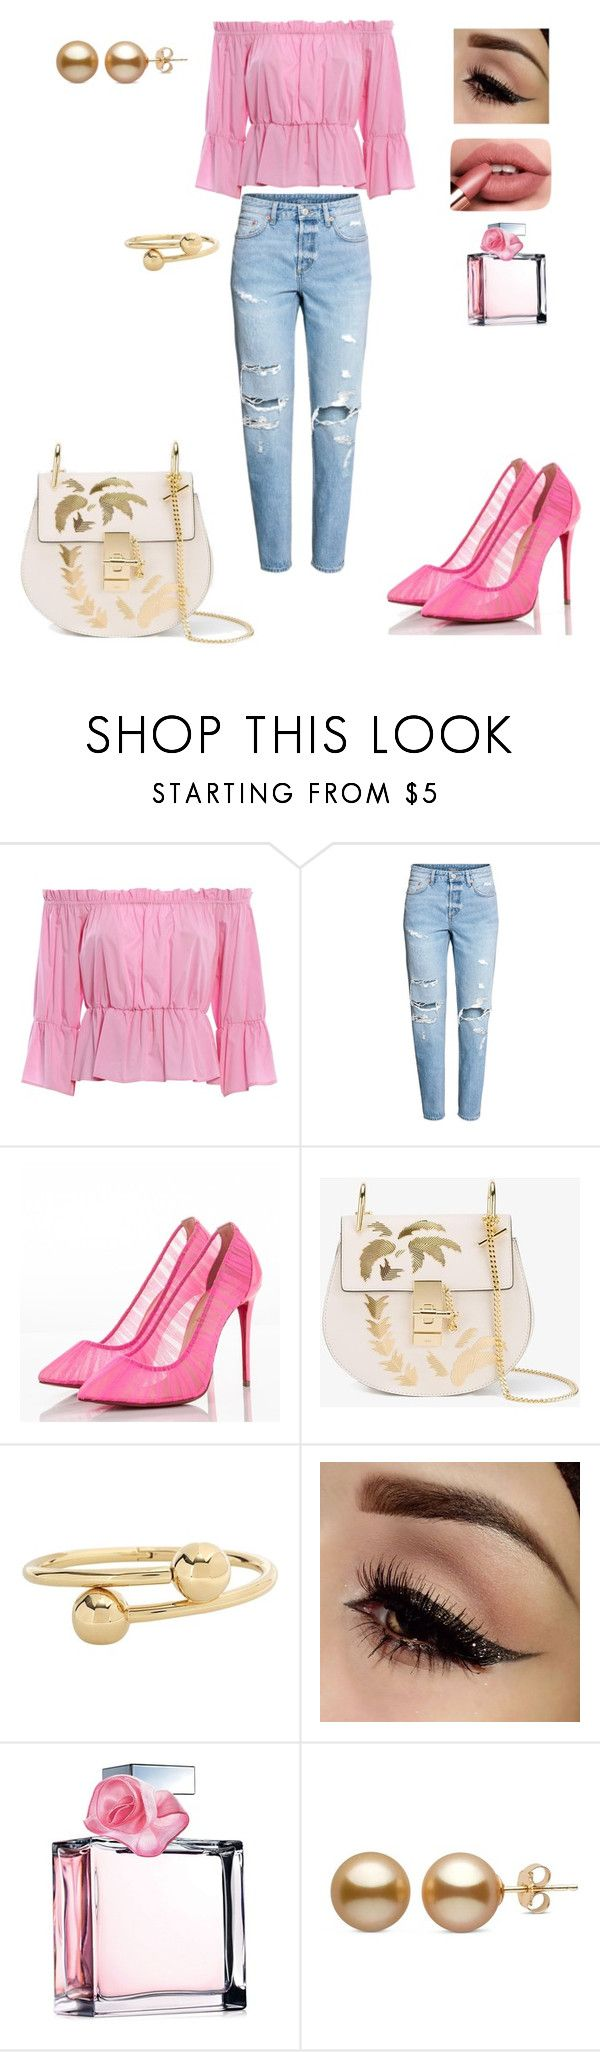 """""""Untitled #33"""" by dedic-elvira ❤ liked on Polyvore featuring Dondup, Christian Louboutin, Chloé, J.W. Anderson and Ralph Lauren"""